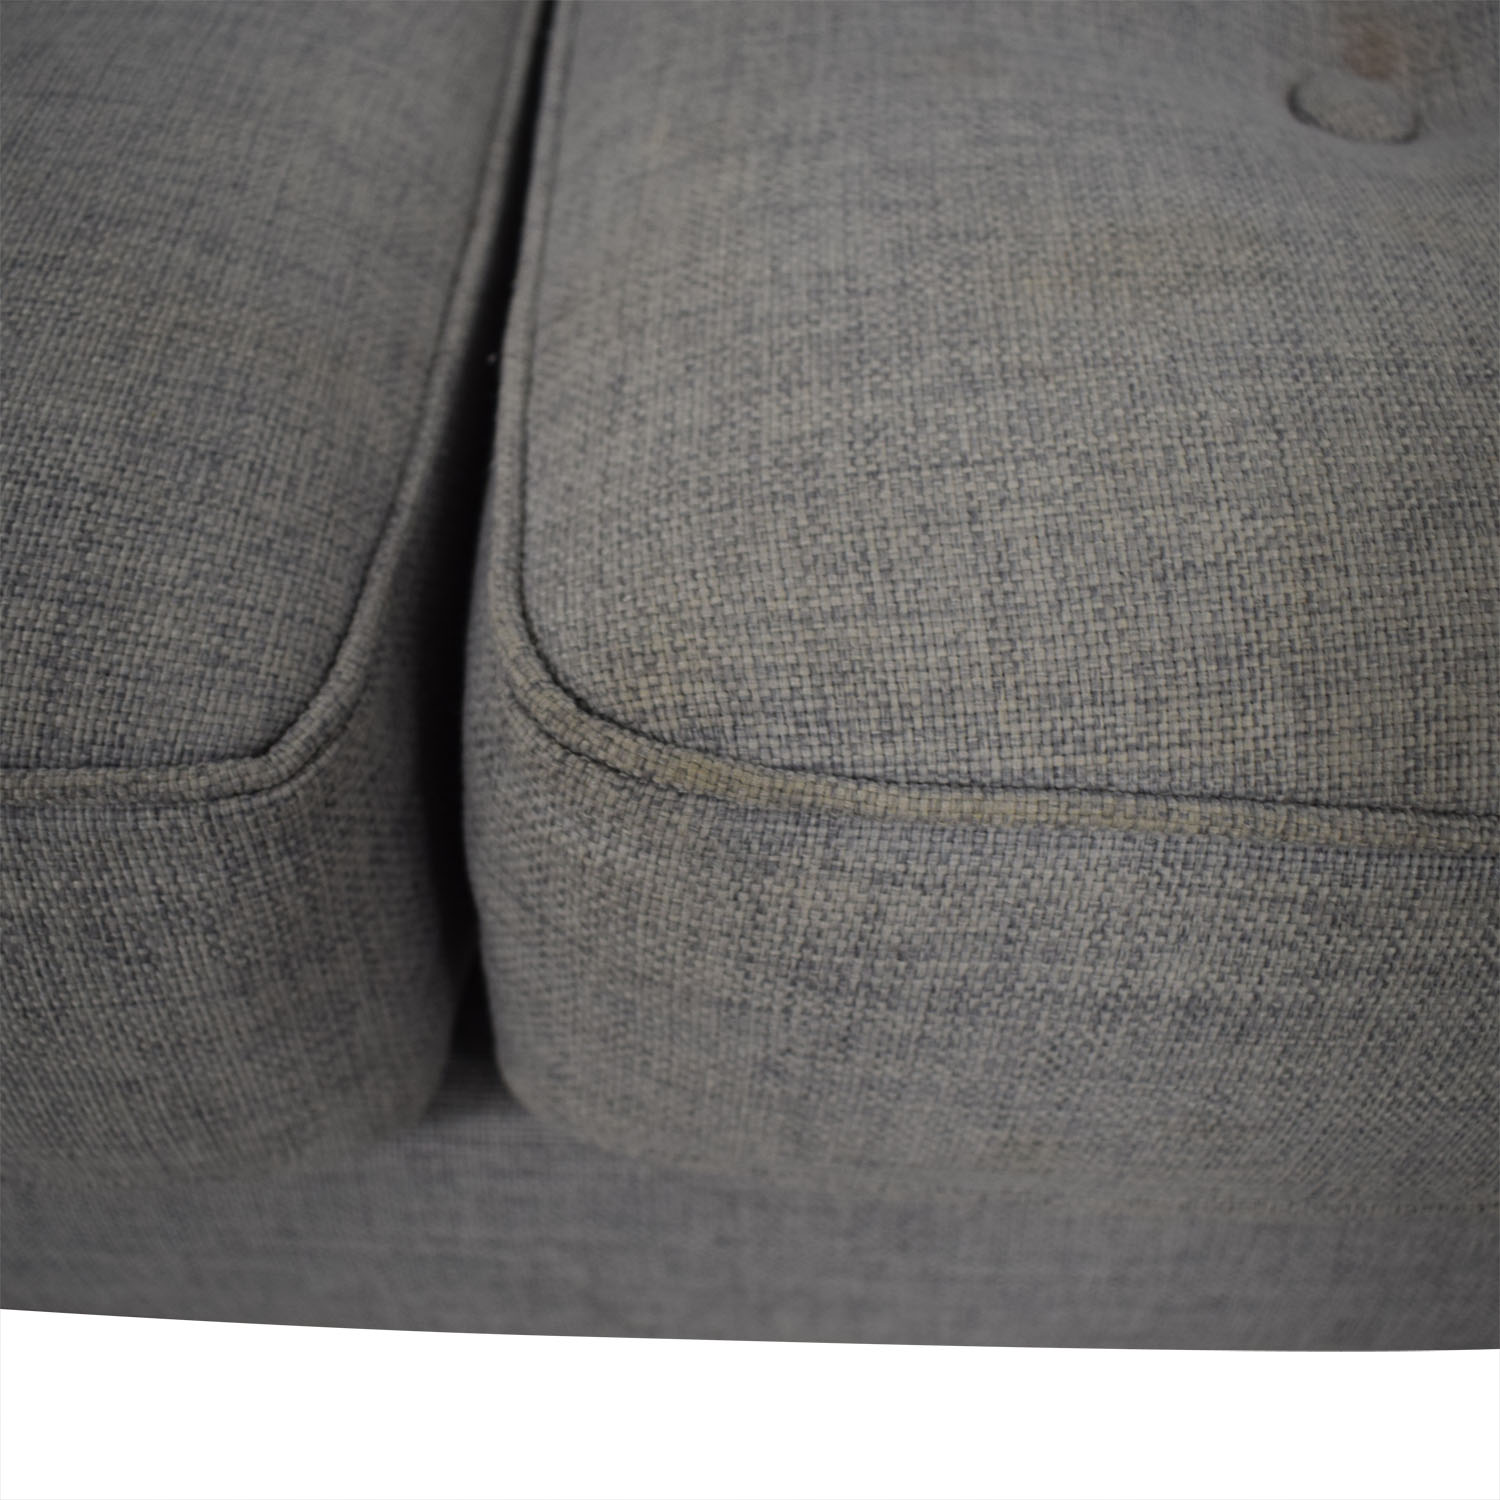 West Elm West Elm Peggy Feather Gray Heathered Crosshatch Tufted Sofa second hand